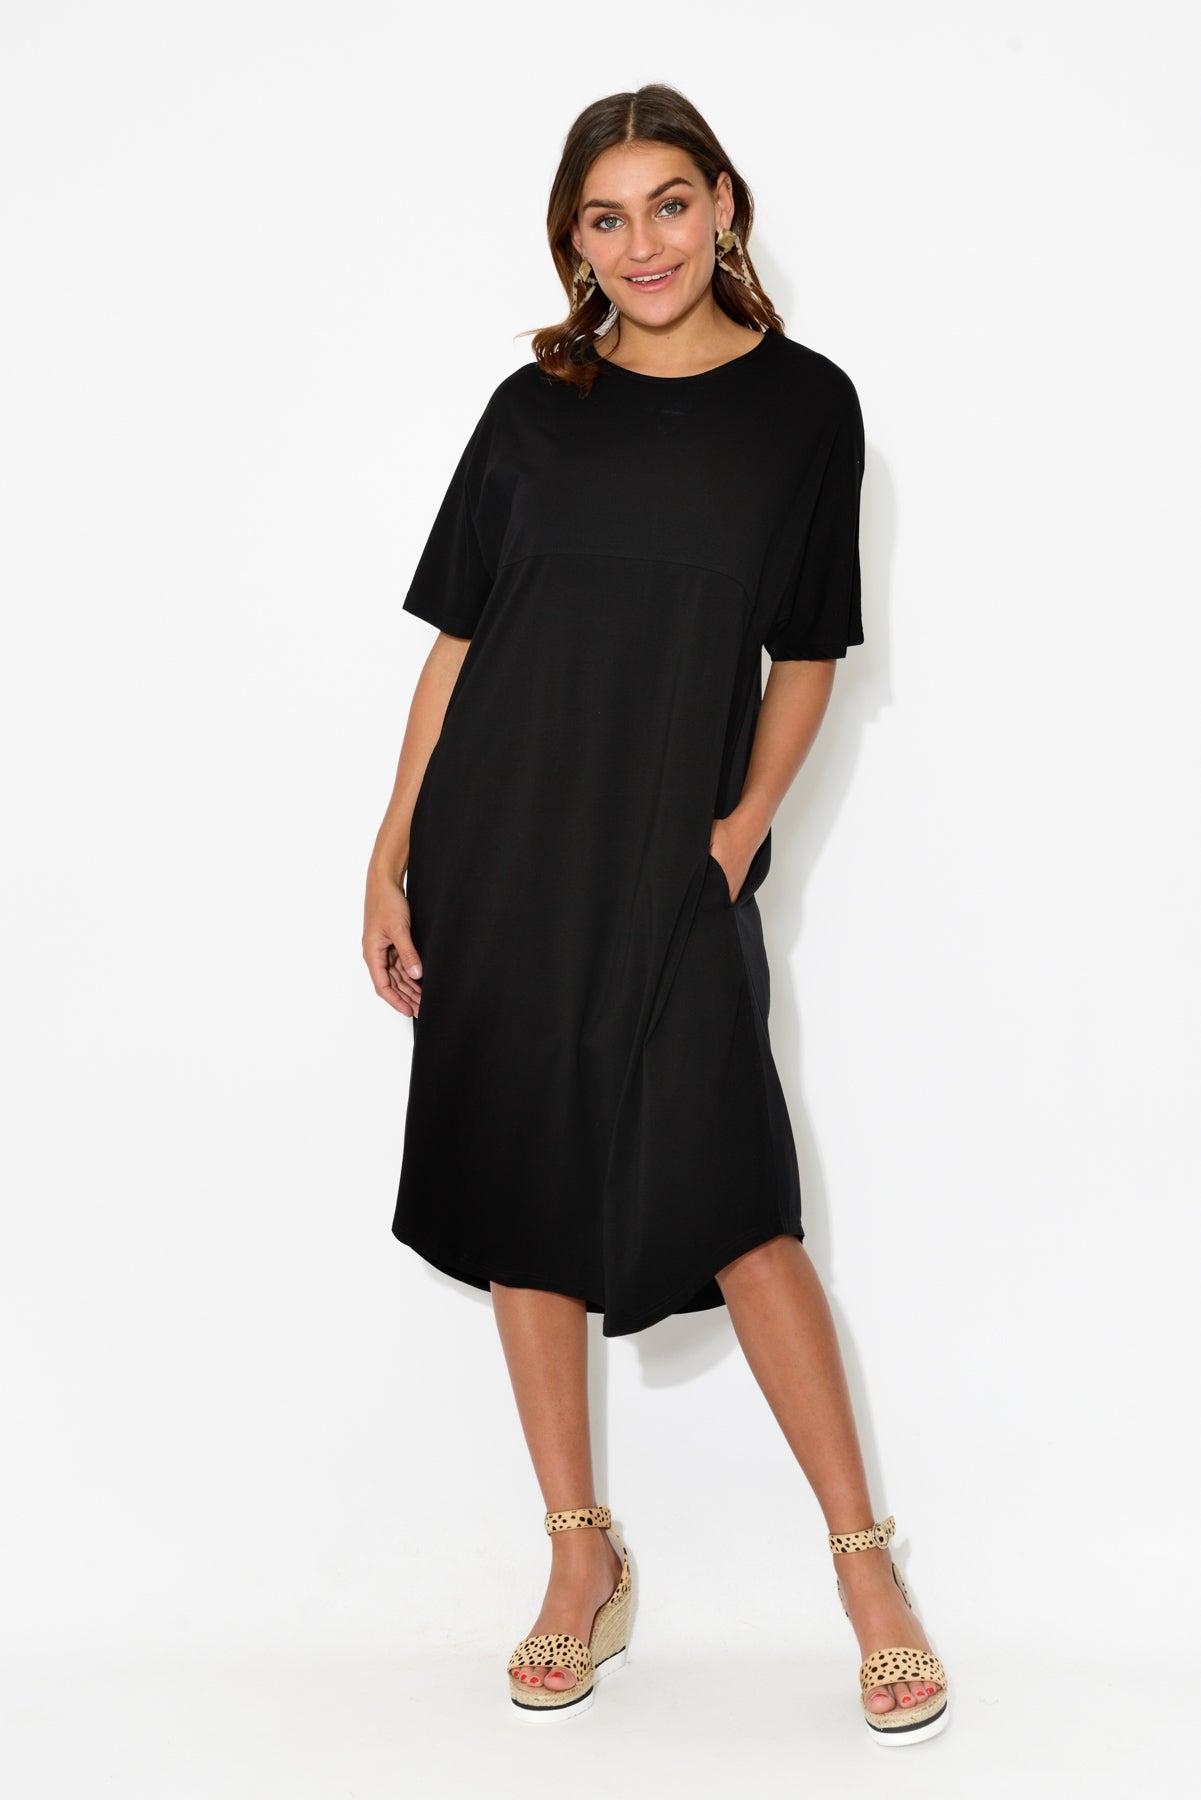 Kai Black Cotton Dress - Blue Bungalow